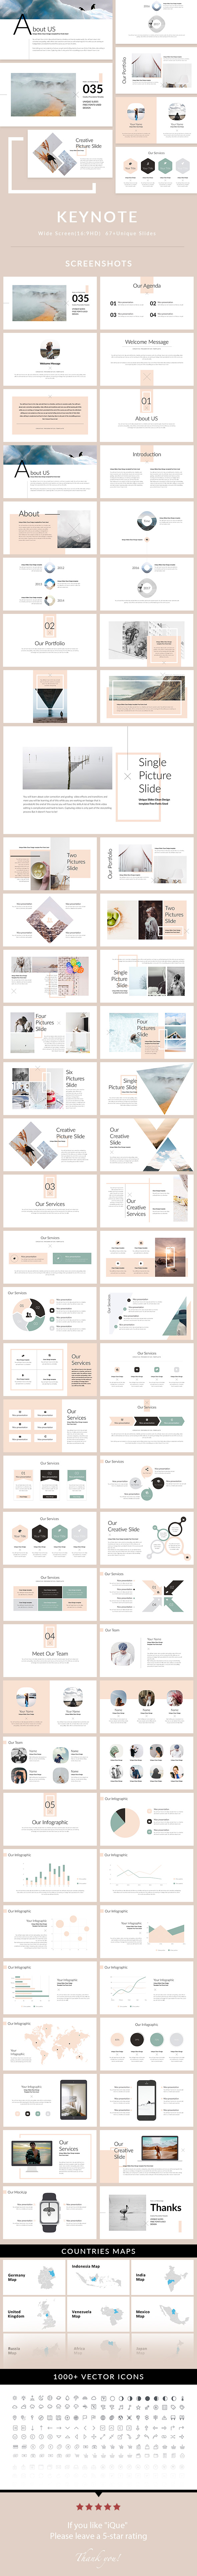 iQue - Keynote Presentation Template - Creative Keynote Templates